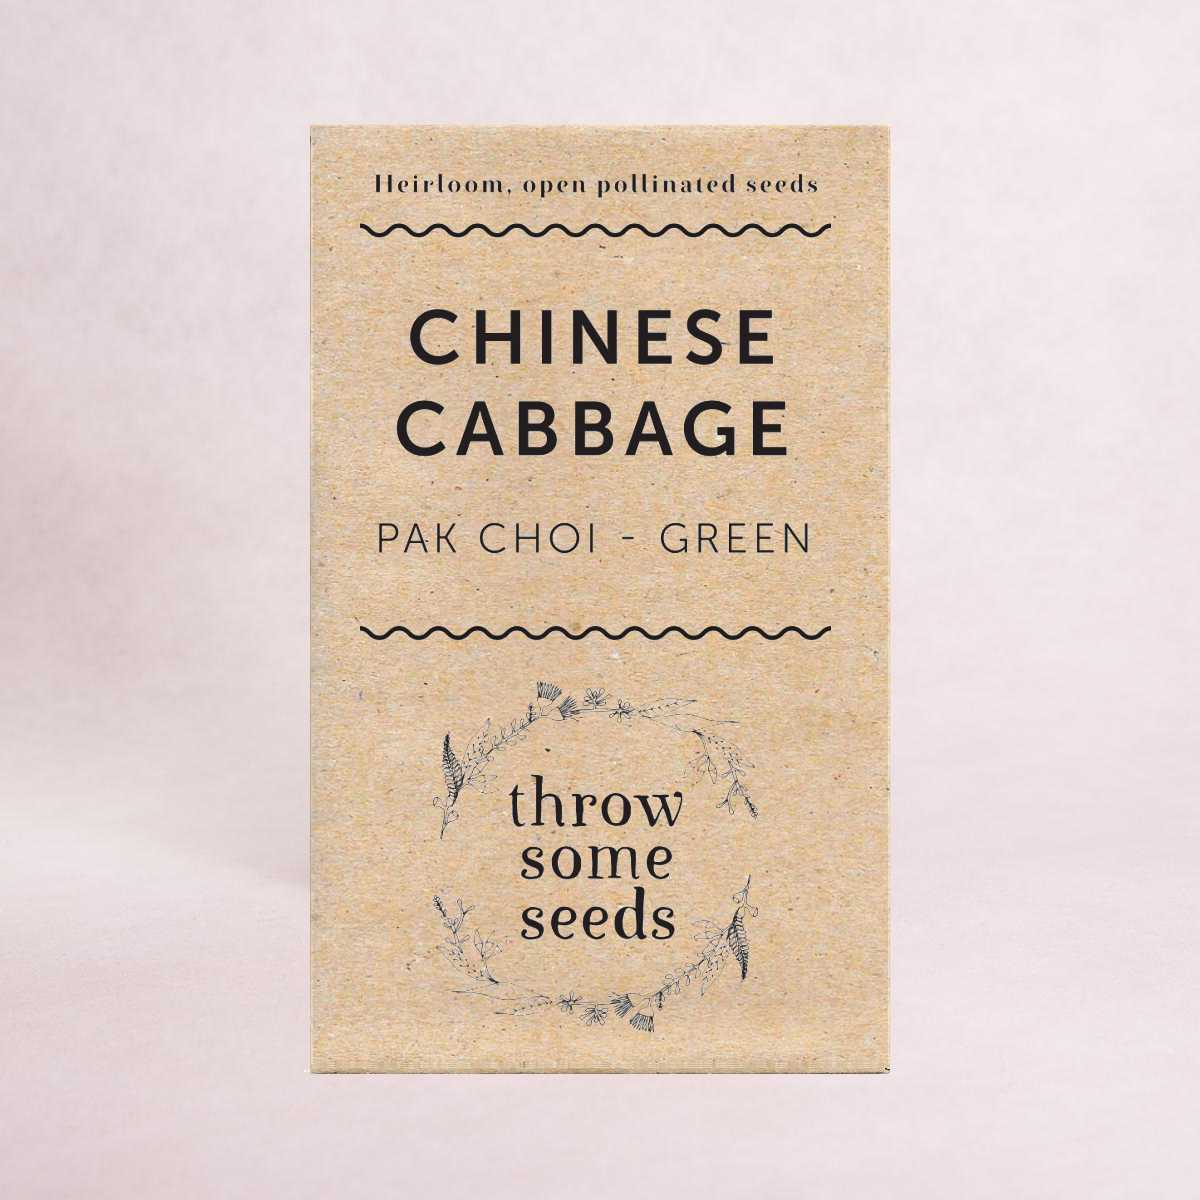 Chinese Cabbage (Pak Choi - Green) Seeds - Seeds - Throw Some Seeds - Australian gardening gifts and eco products online!